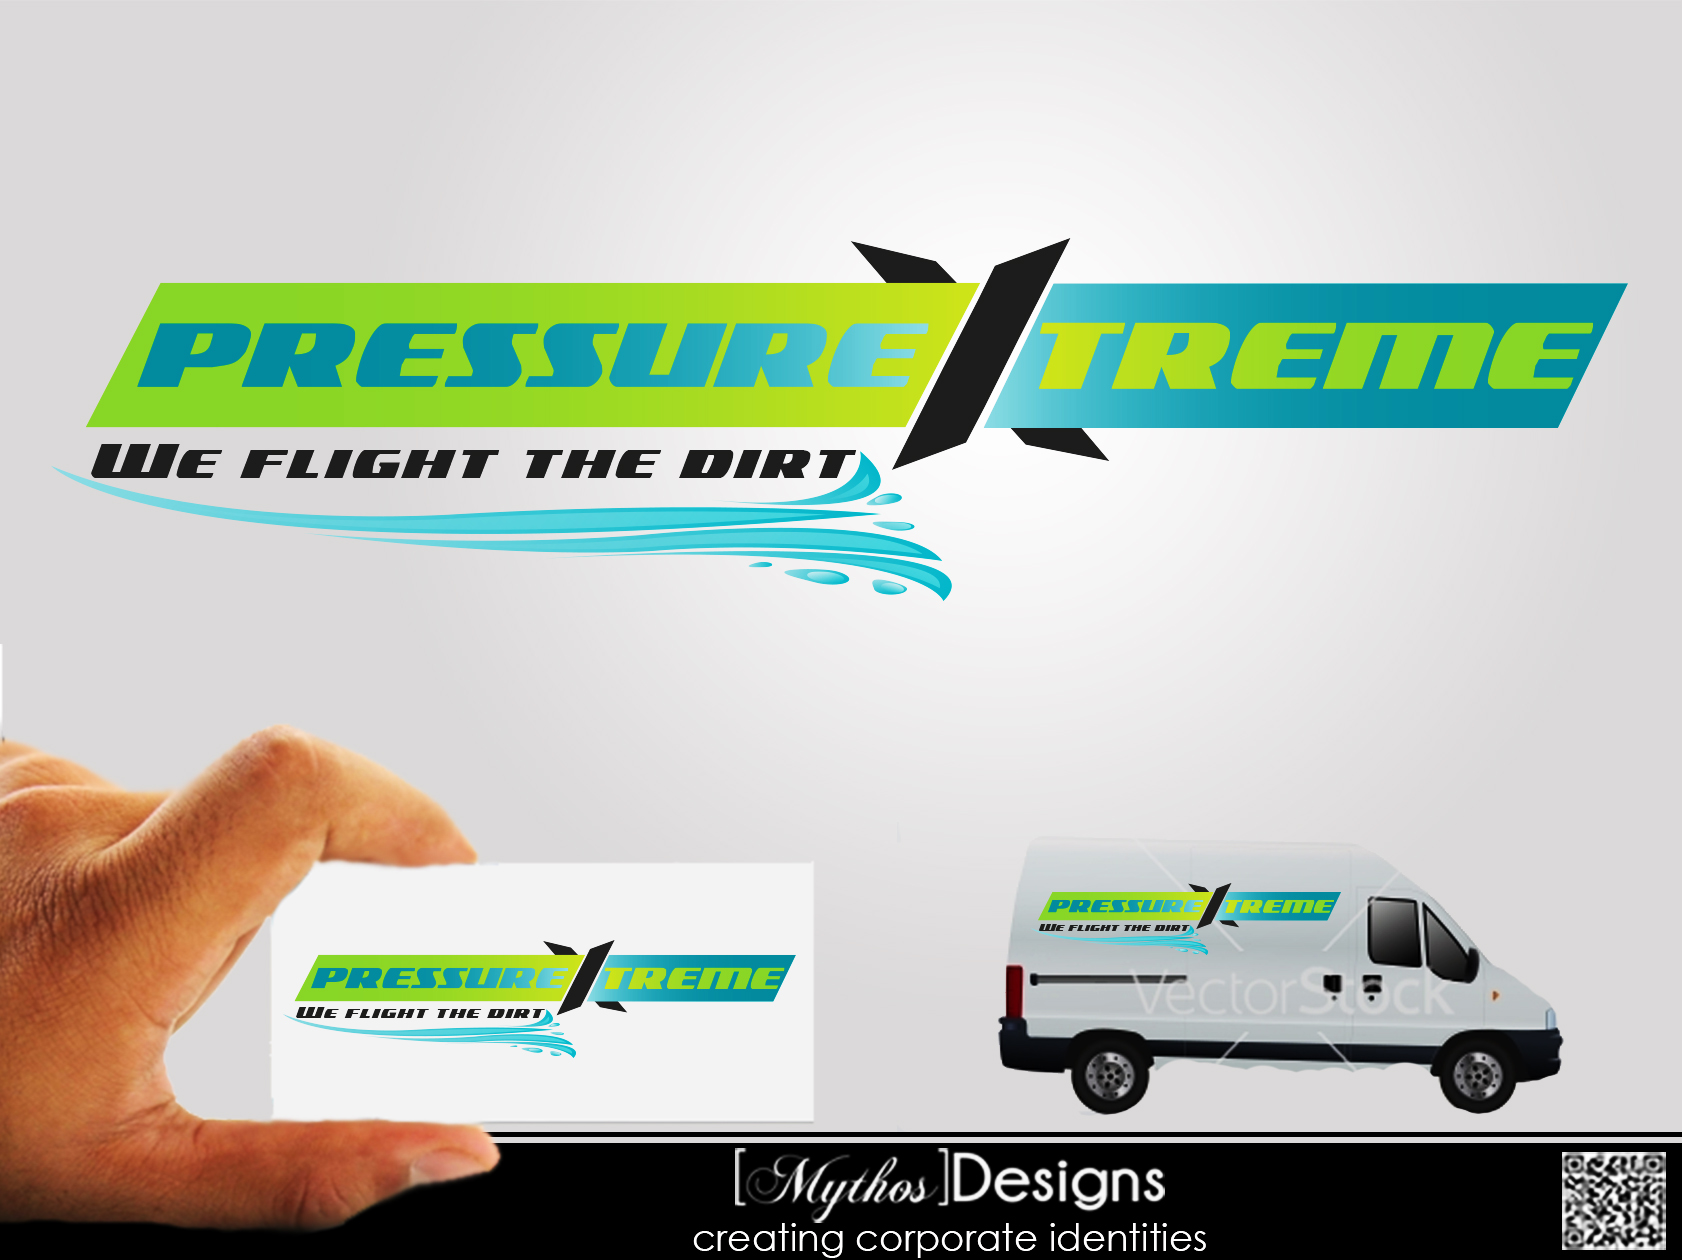 Logo Design by Mythos Designs - Entry No. 59 in the Logo Design Contest New Logo Design for PRESSUREXTREME.